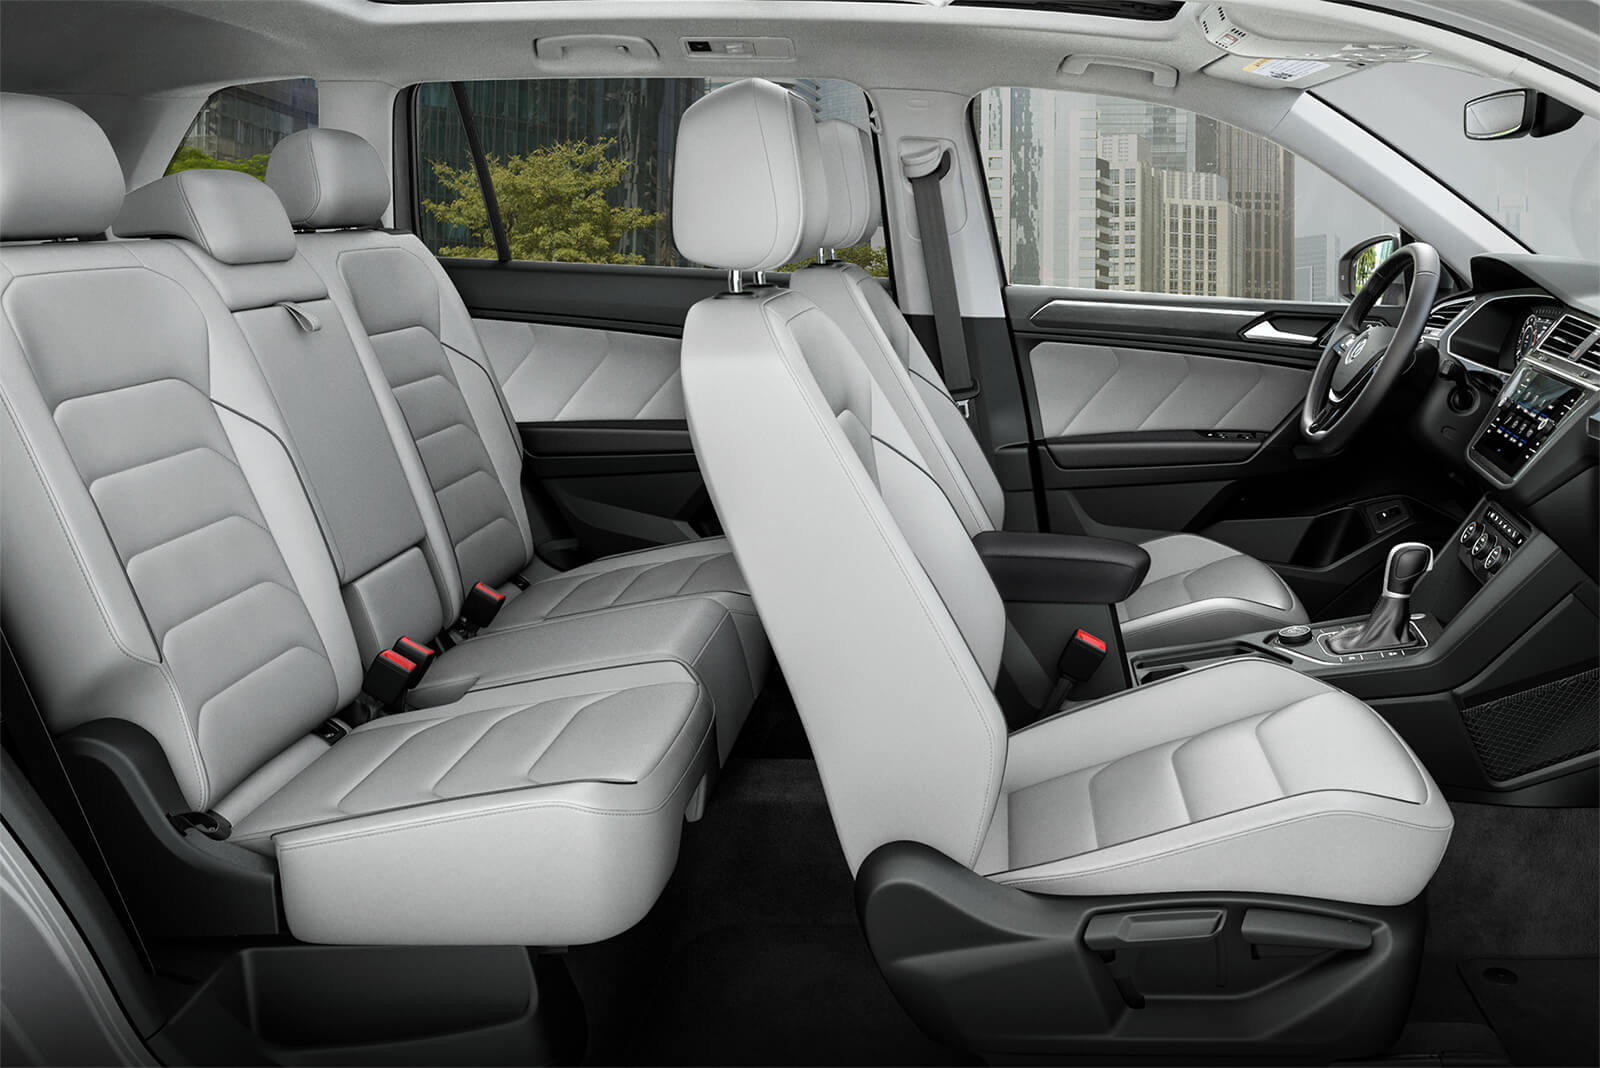 Enjoy Total Comfort During Any Drive in the Tiguan!